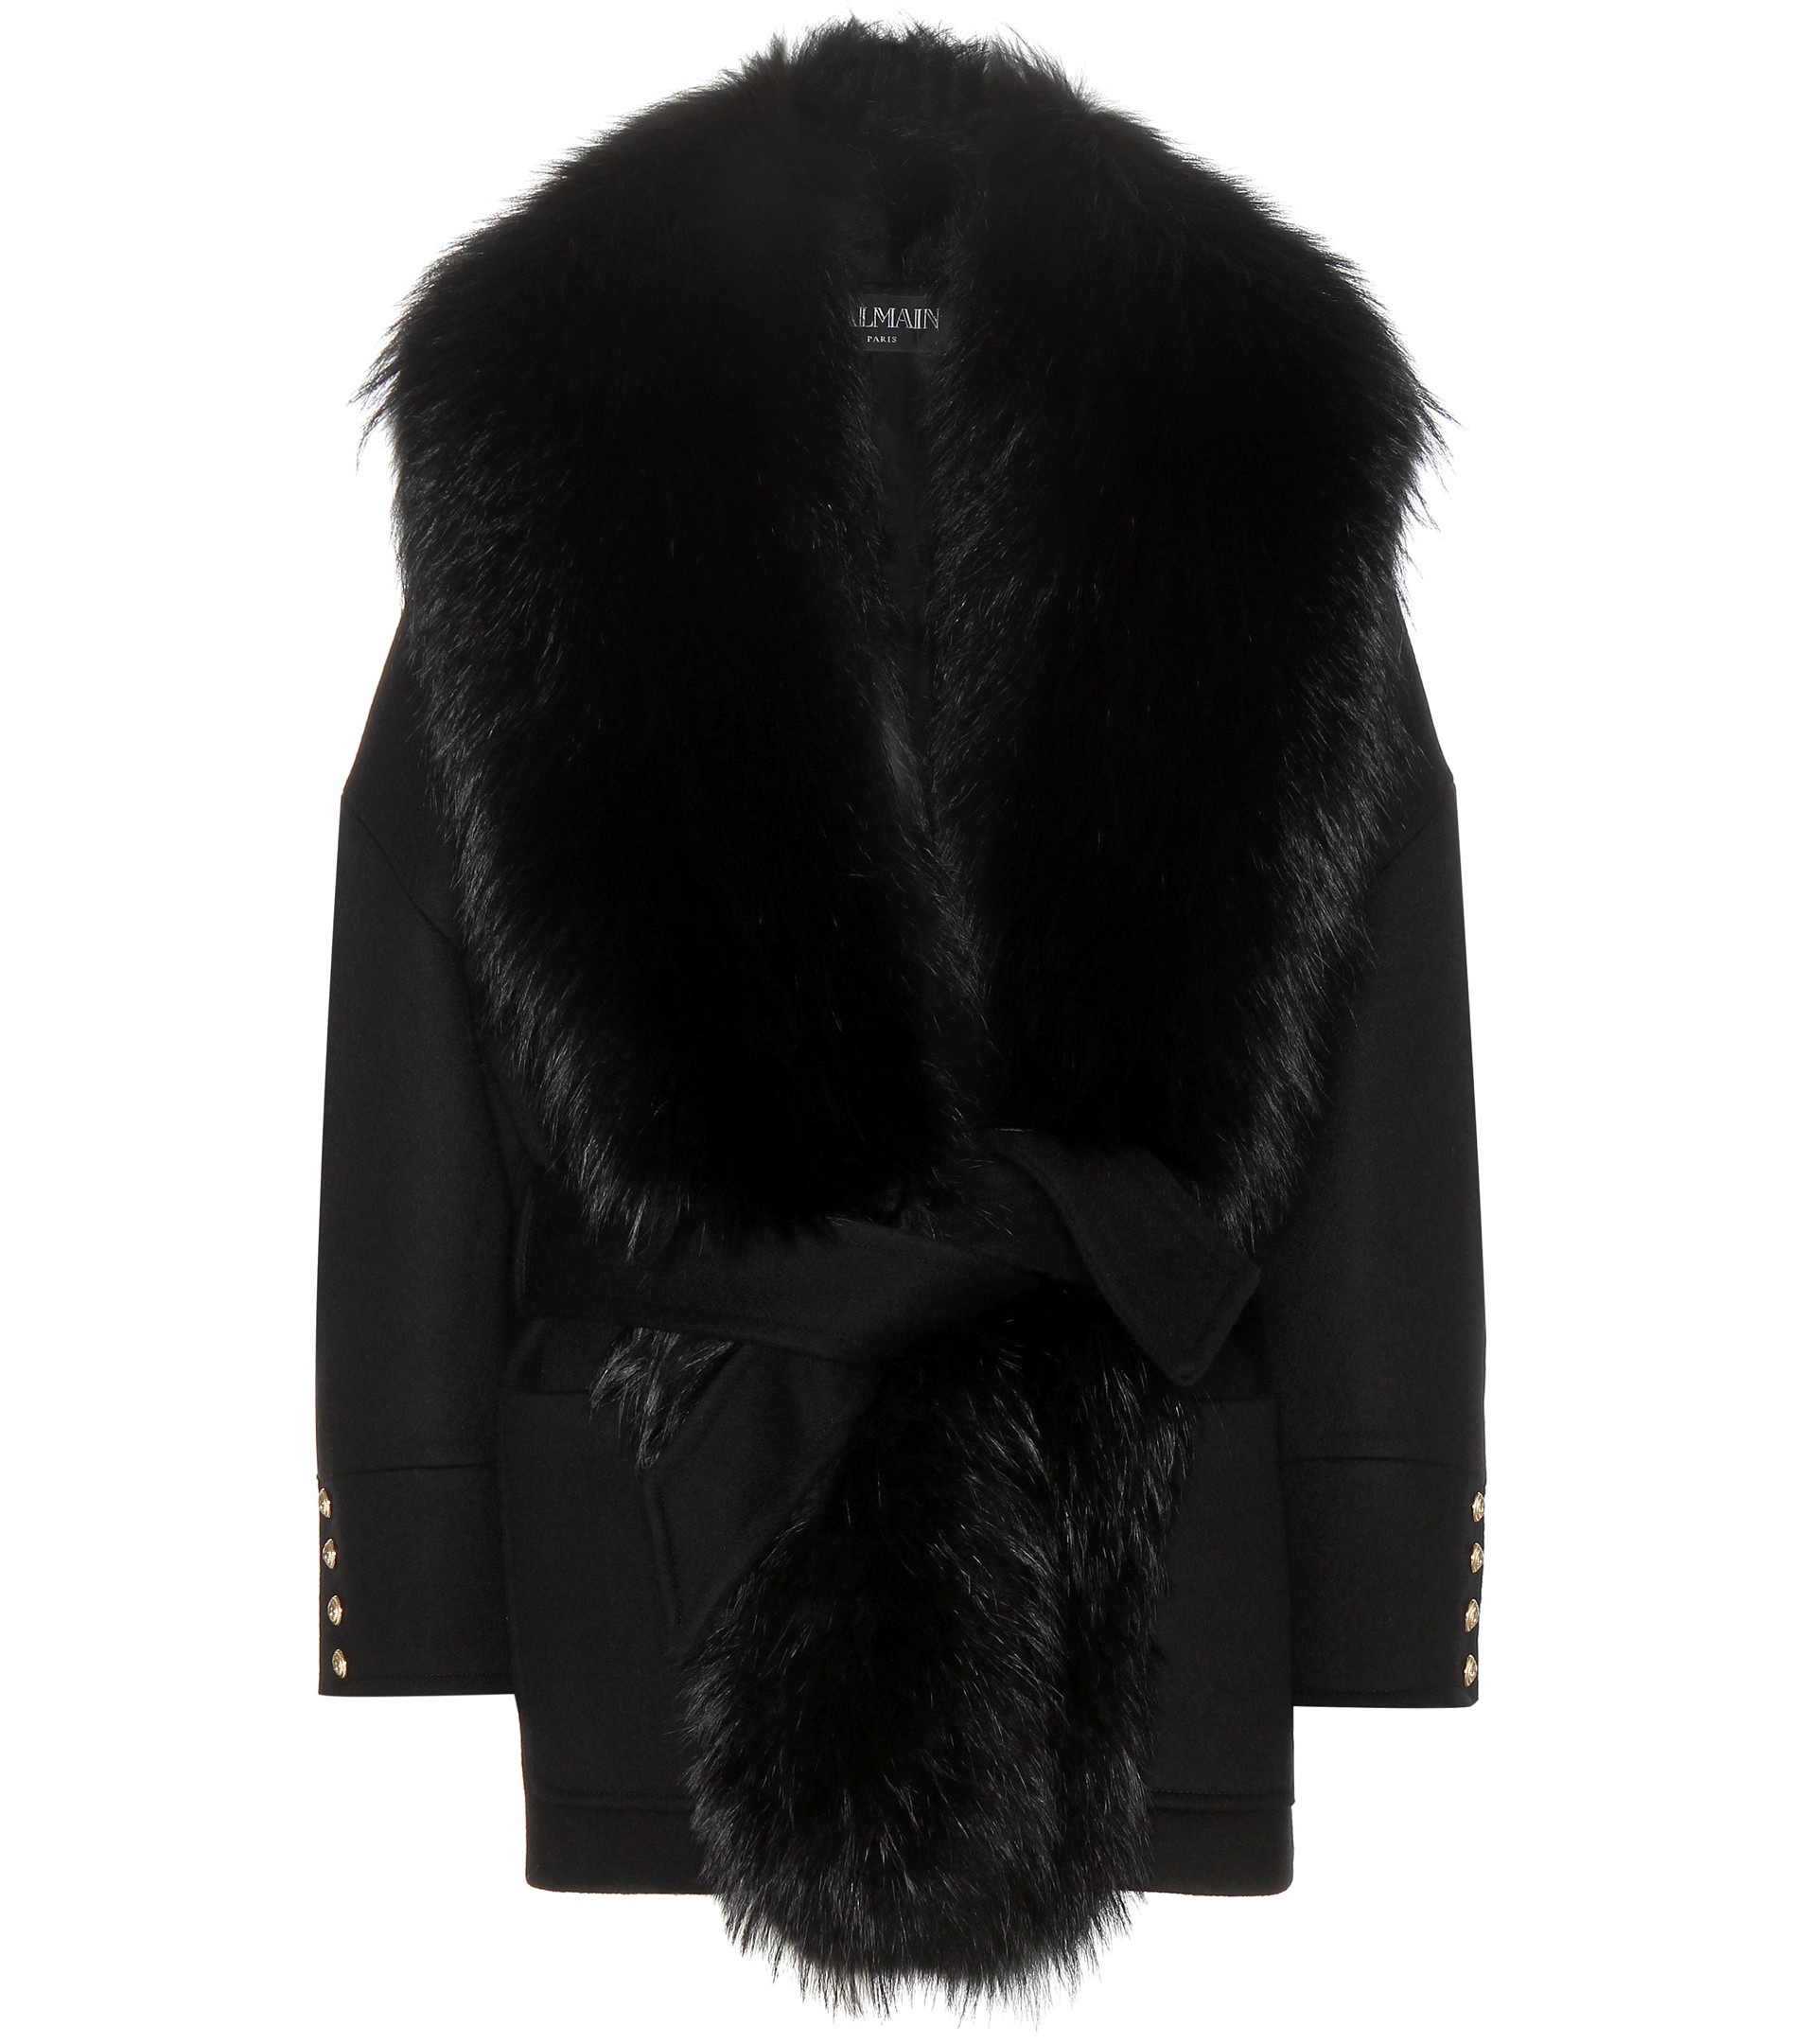 Balmain Fur-trimmed Wool And Cashmere Coat in Black | Lyst